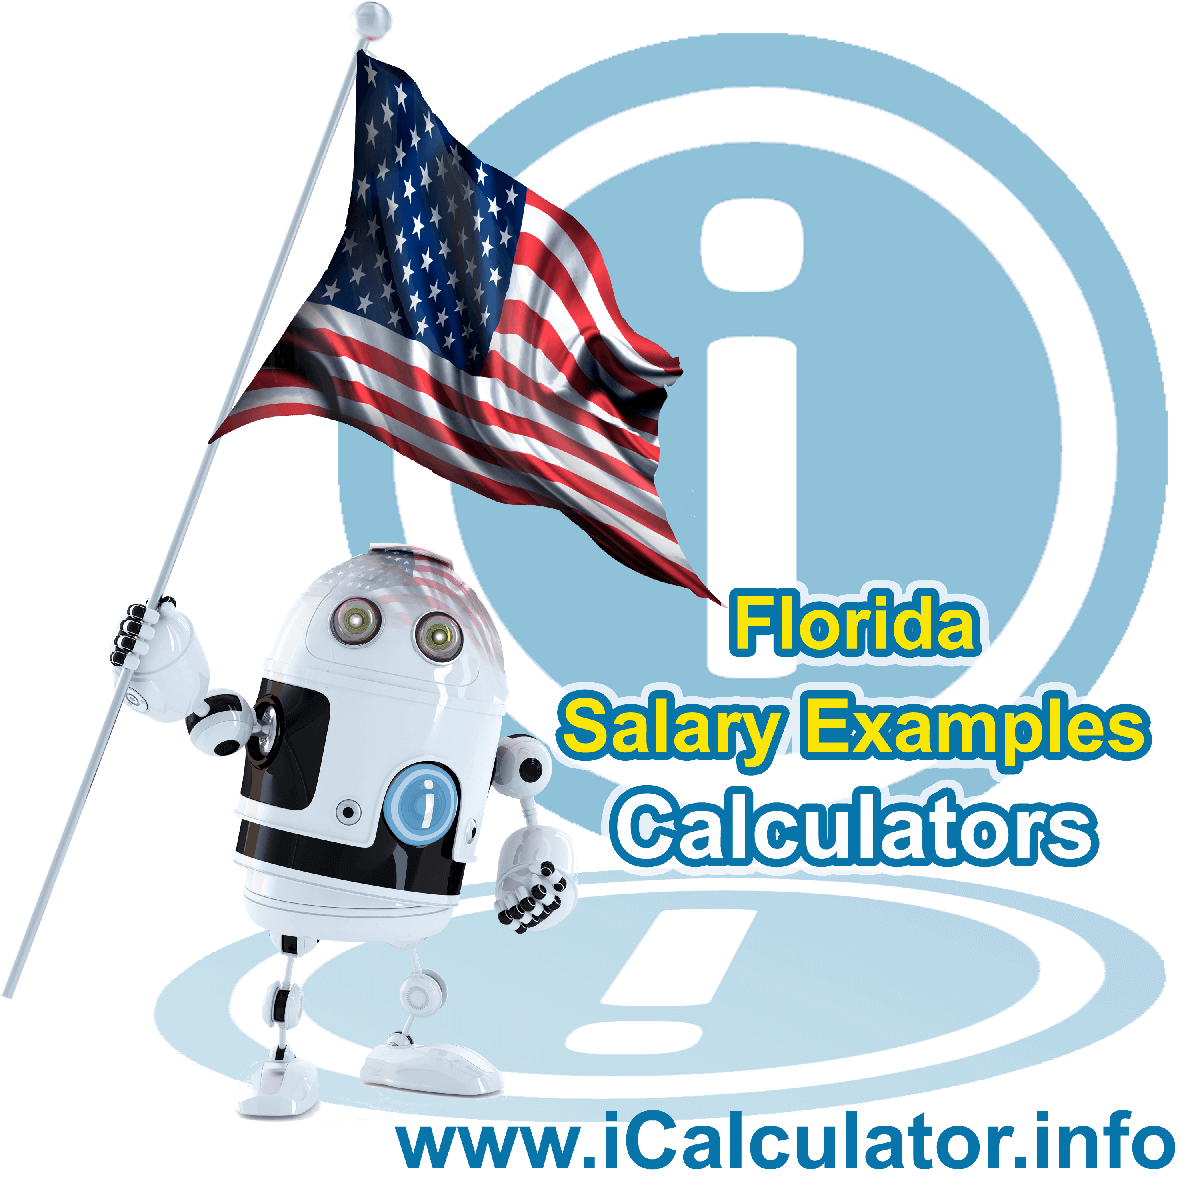 Florida Salary Example for $280.00 in 2020 | iCalculator | $280.00 salary example for employee and employer paying Florida State tincome taxes. Detailed salary after tax calculation including Florida State Tax, Federal State Tax, Medicare Deductions, Social Security, Capital Gains and other income tax and salary deductions complete with supporting Florida state tax tables